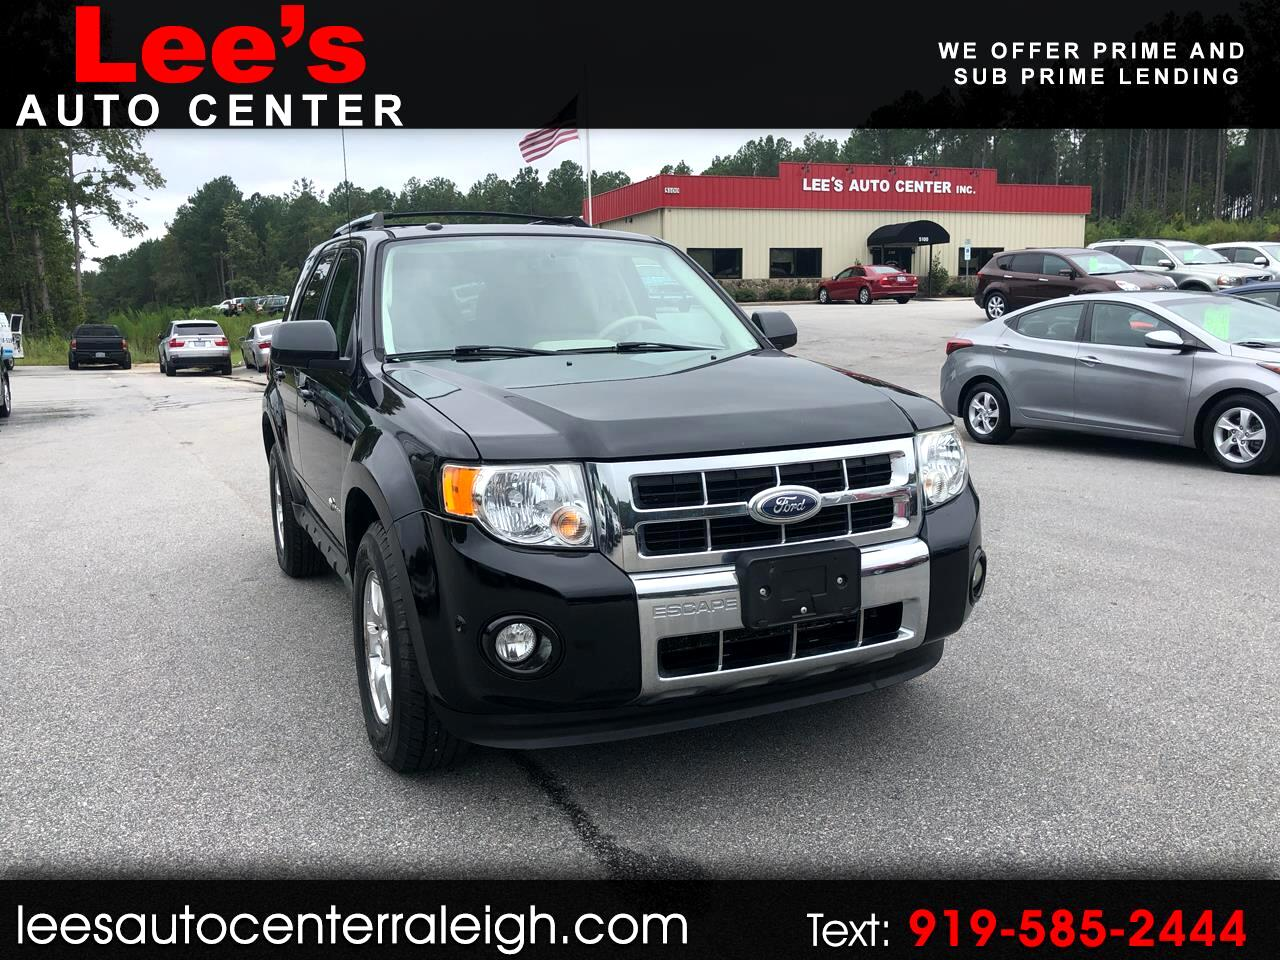 2010 Ford Escape HYBRID LIMITED, CARFAX 1 OWNER